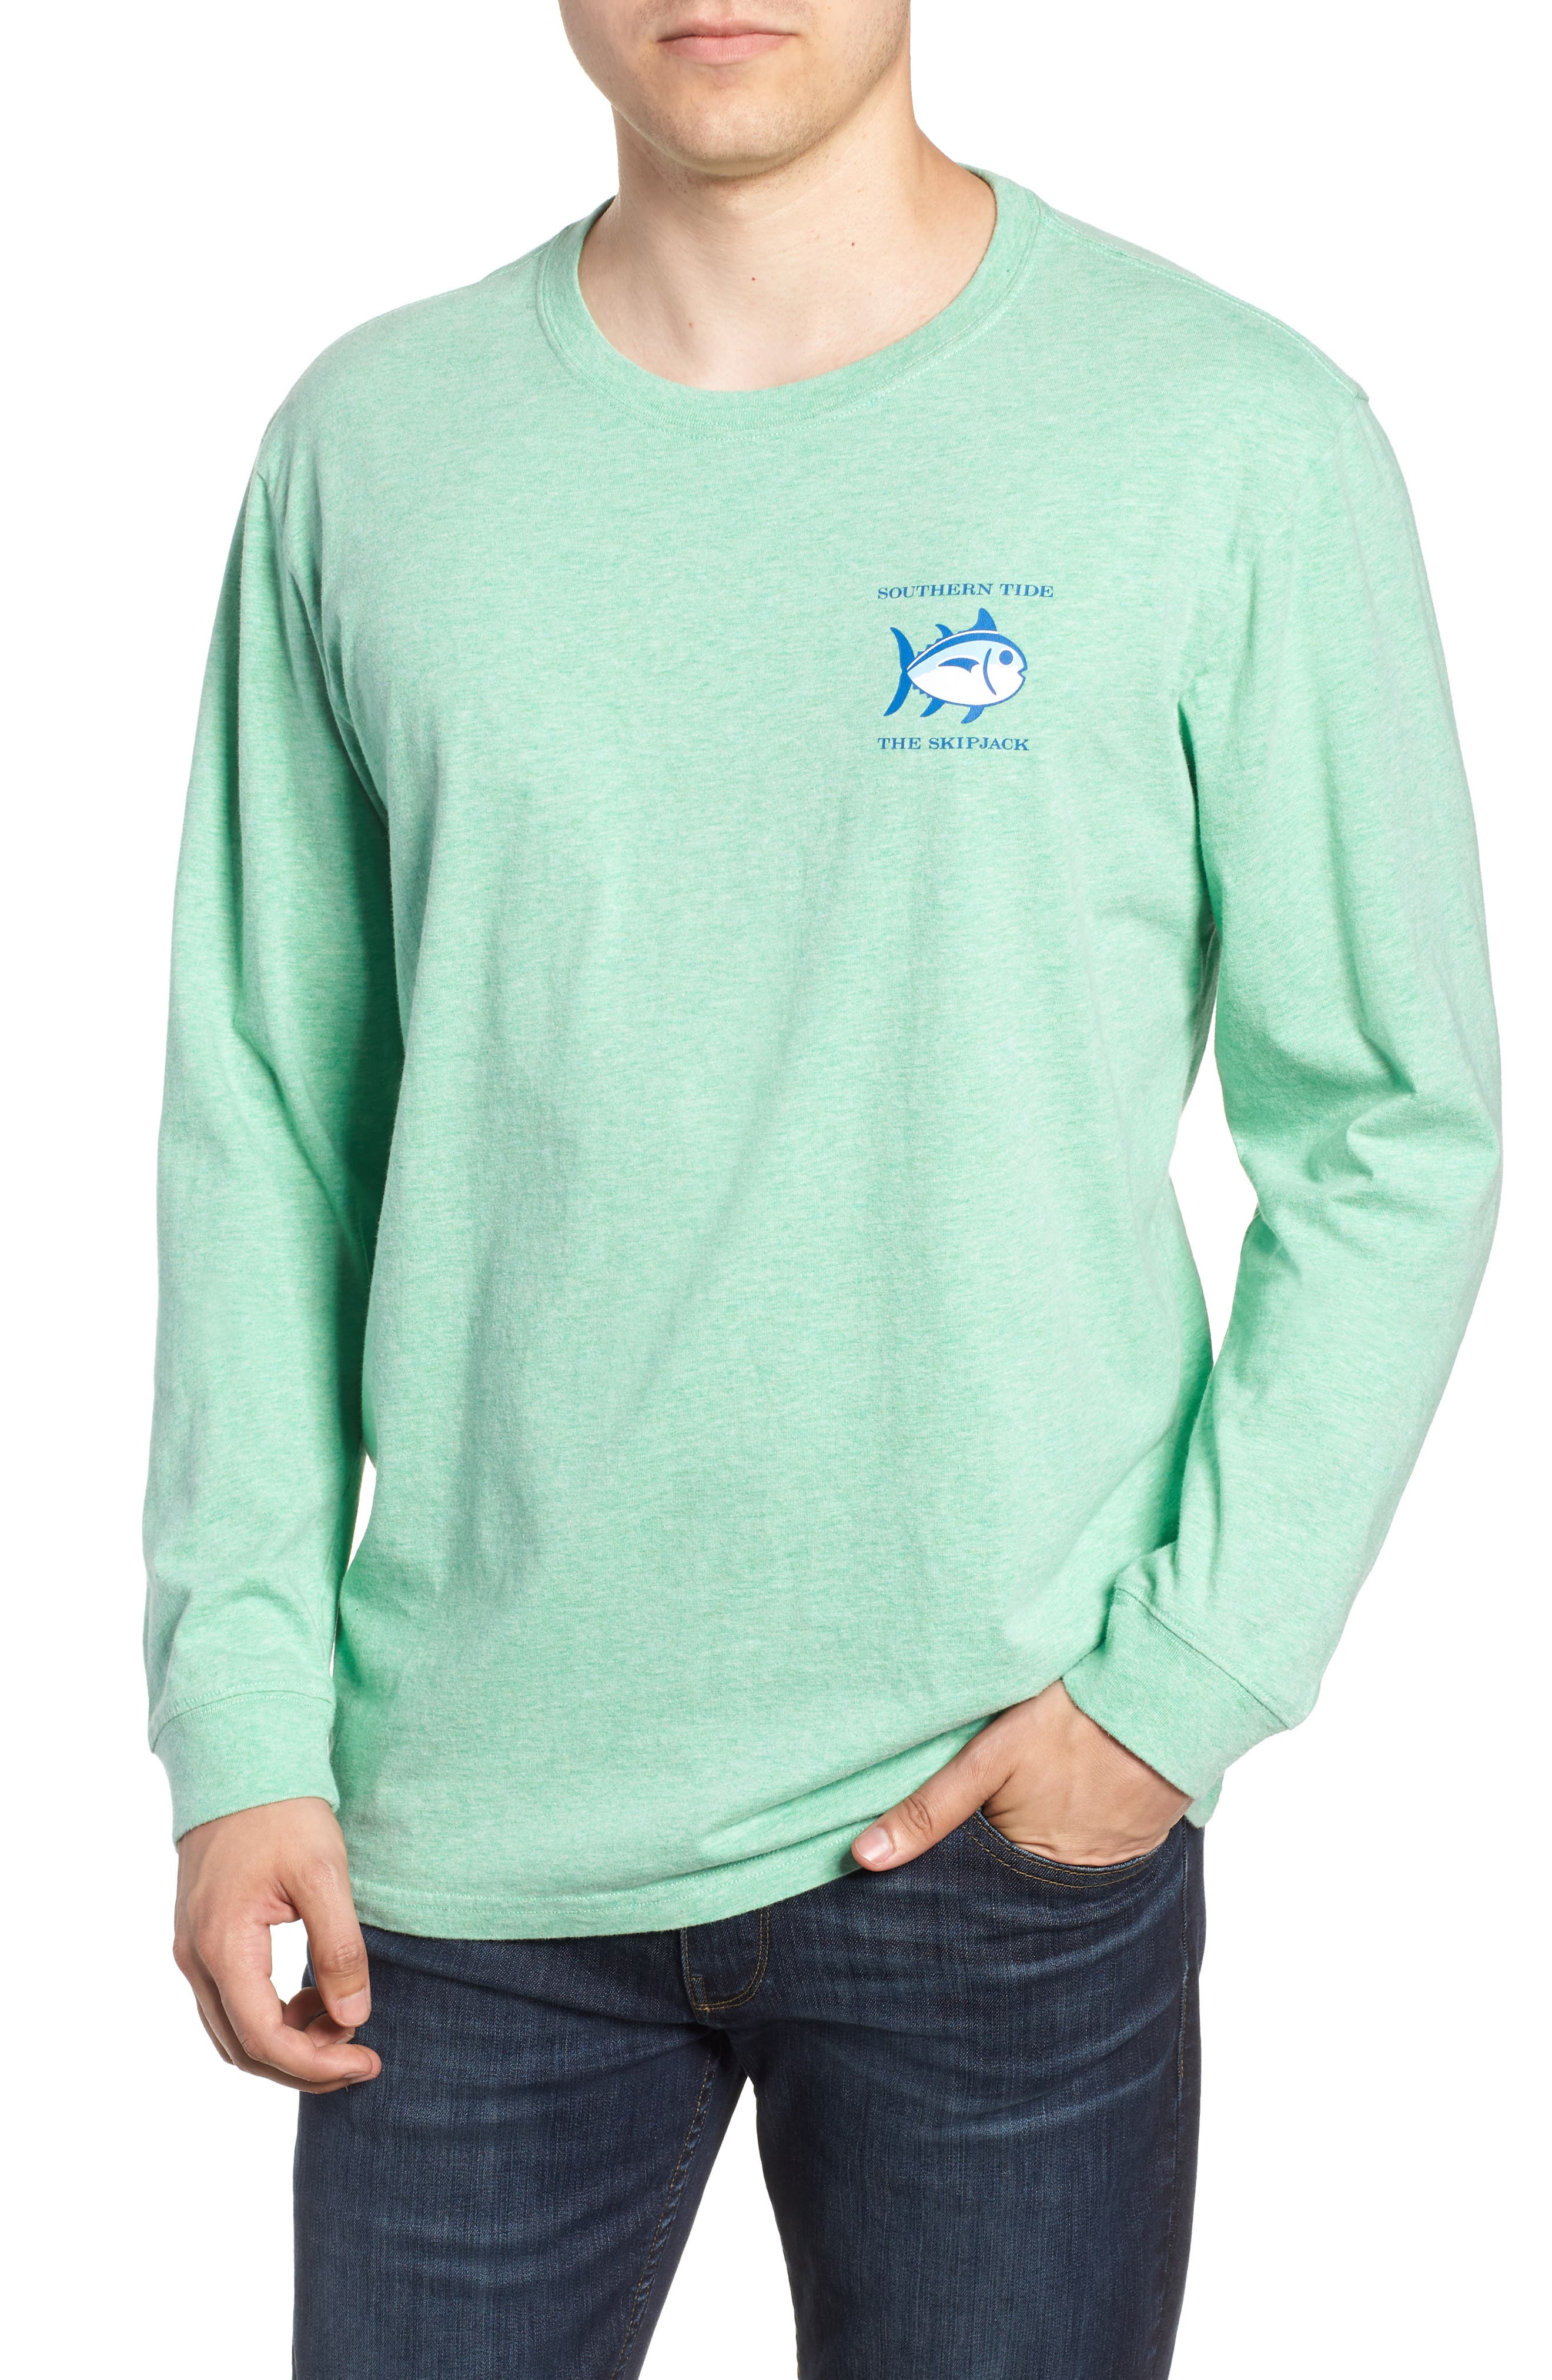 Original Skipjack T-Shirt,                         Main,                         color,